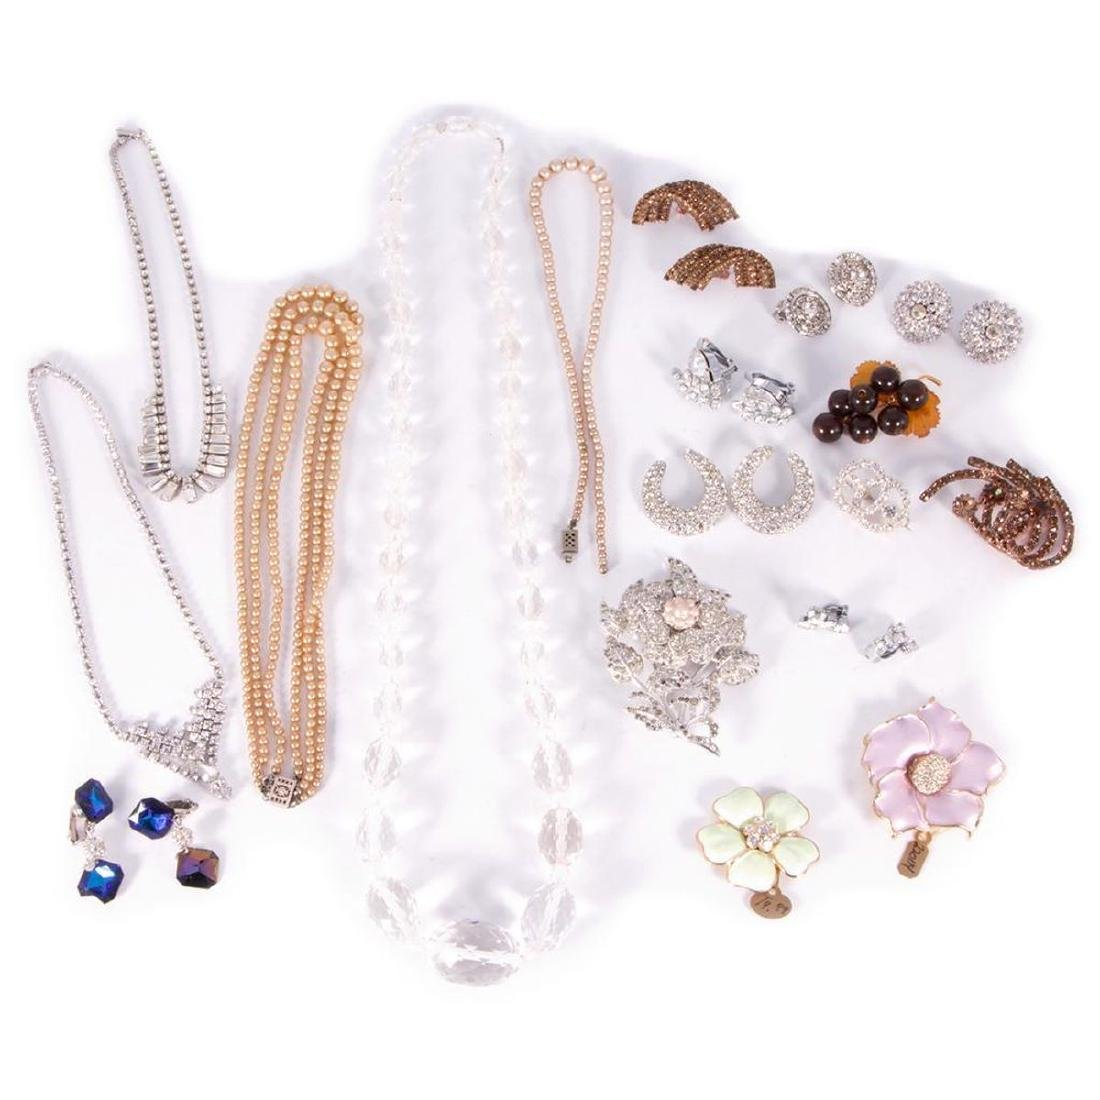 Collection of rhinestone and rock crystal jewelry